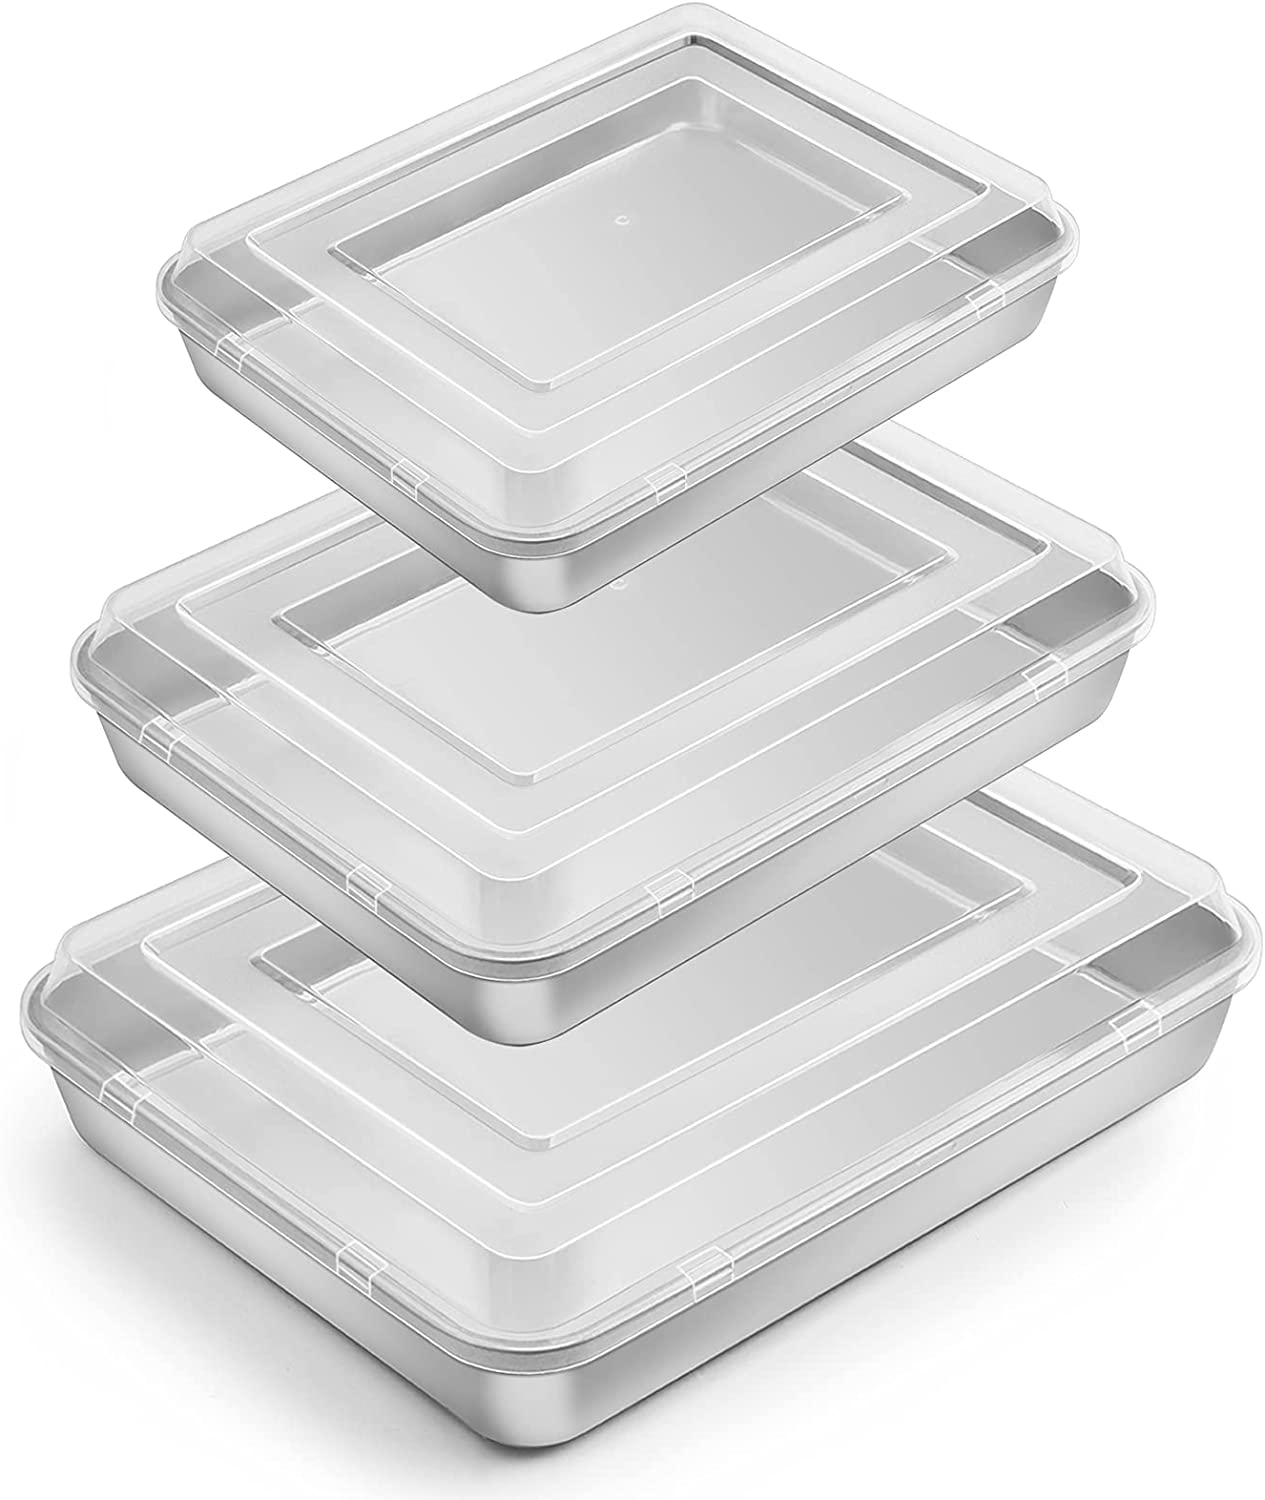 Baking Pan with Lid(12.4/10.4/9.4 inch), E-far Stainless Steel Rectangular Sheet Cake Pans with Cover, Metal Bakeware Sets for Lasagna Casseroles Brownie, Non-toxic & Dishwasher Safe - 3 Pans + 3 Lids